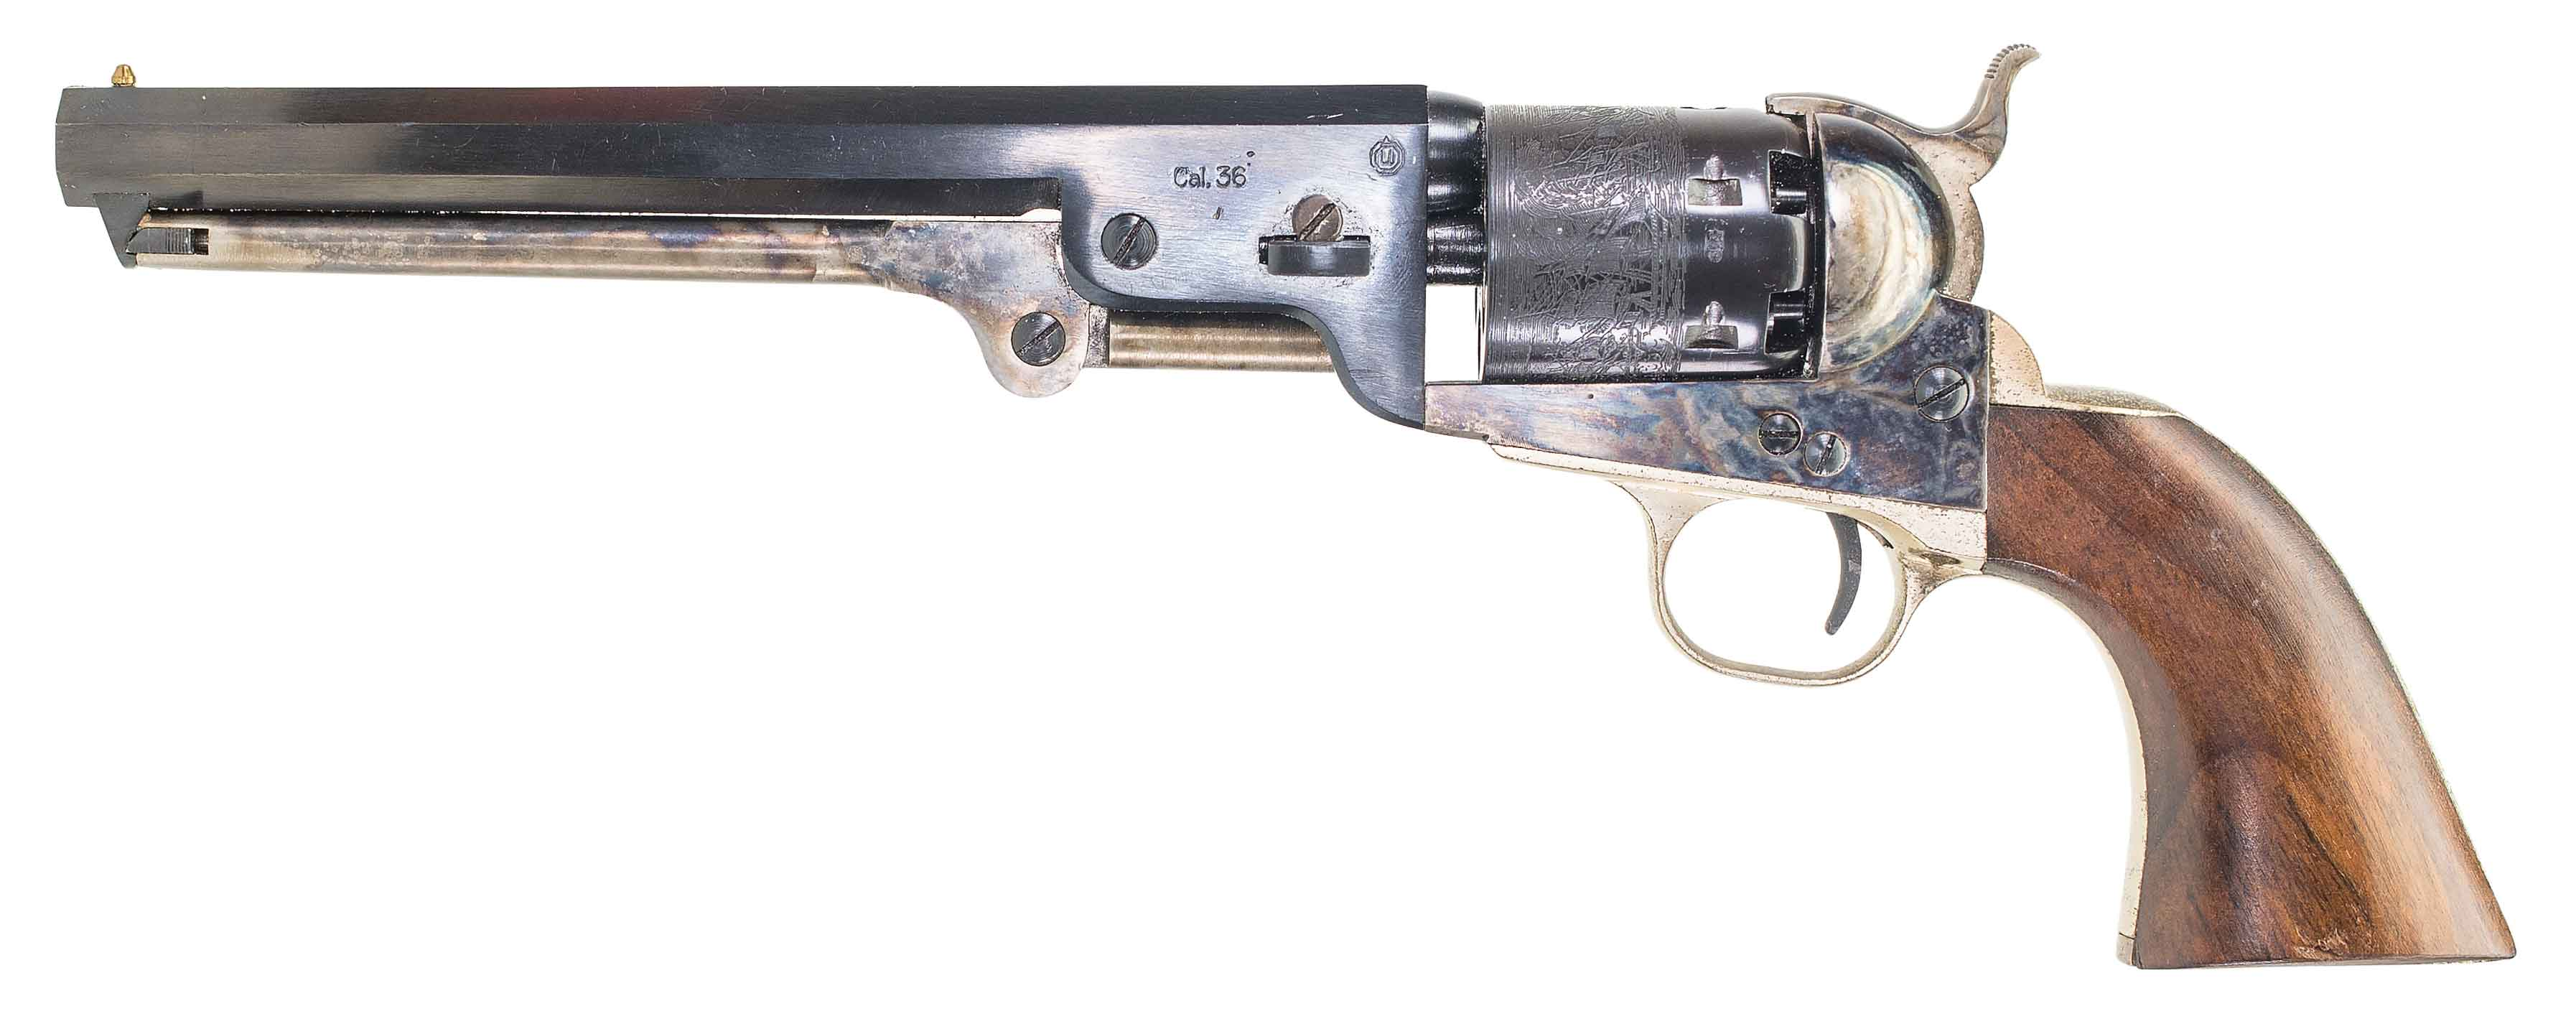 navy arms replica colt 1851 navy revolver auction id 9891262 end